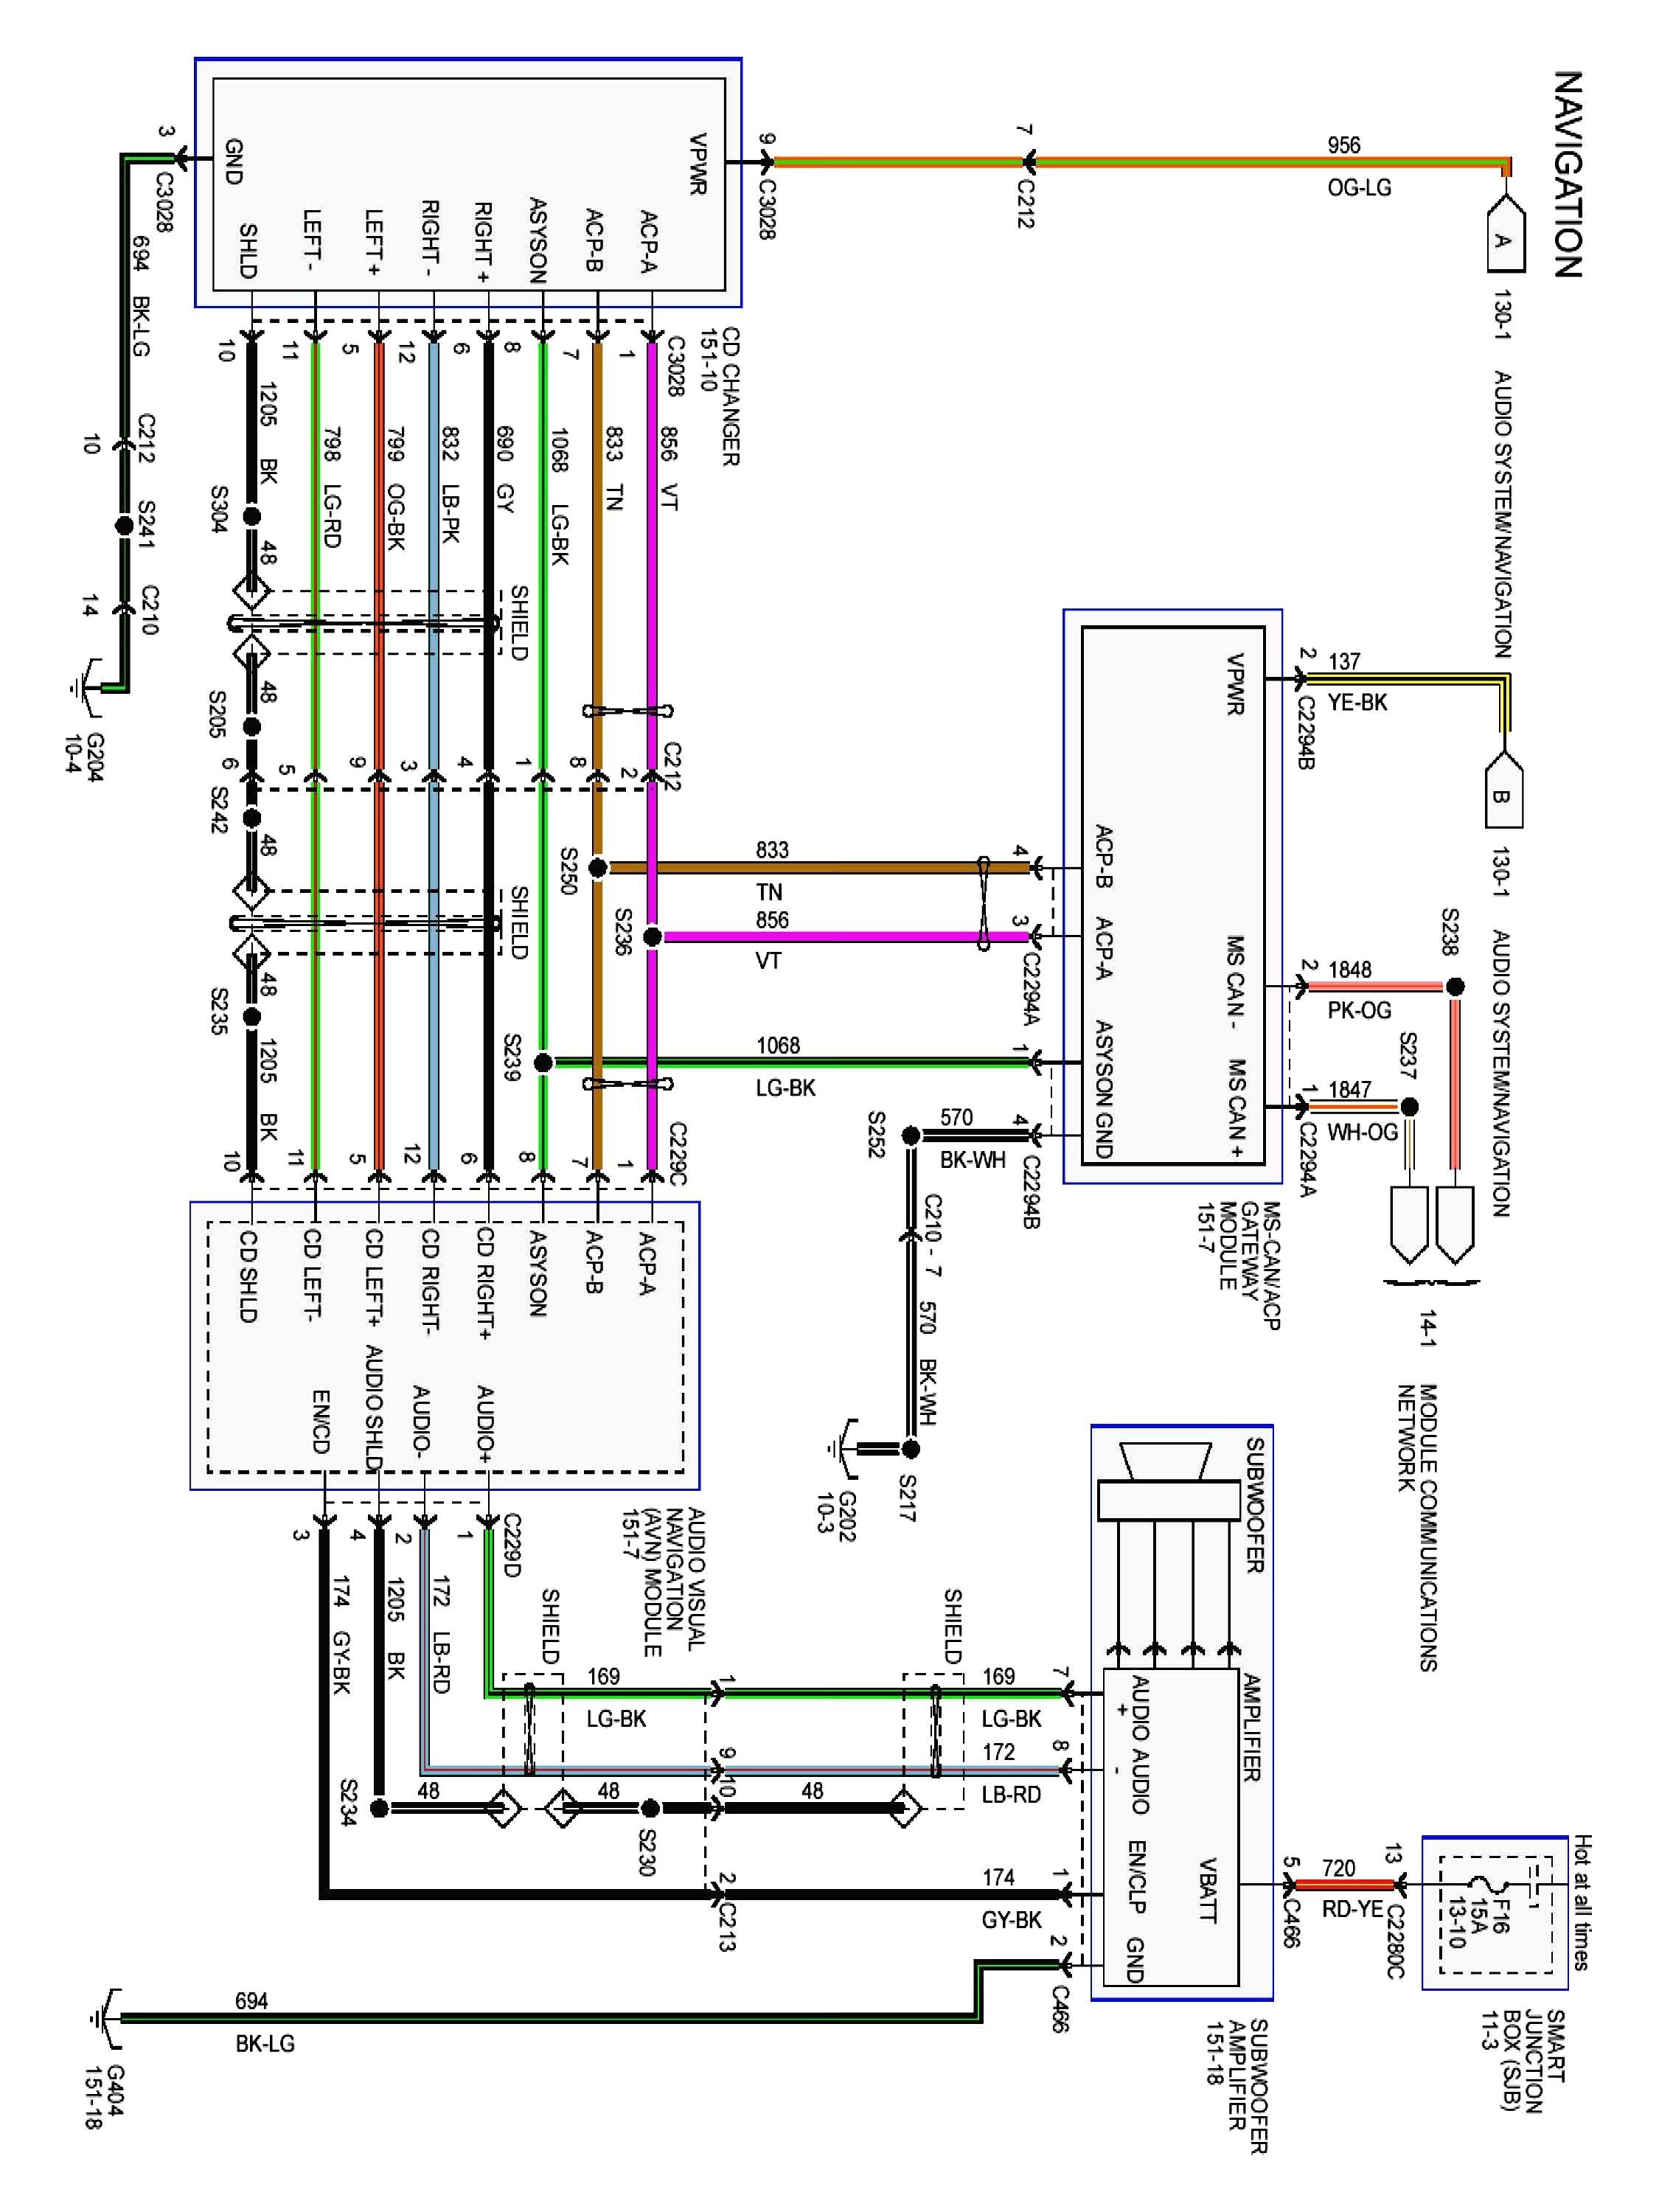 Diagram Fotg Litghts Wiring Diagram 05 Ford Escape Full Version Hd Quality Ford Escape Eardiagram Cpn Valdejuine Fr